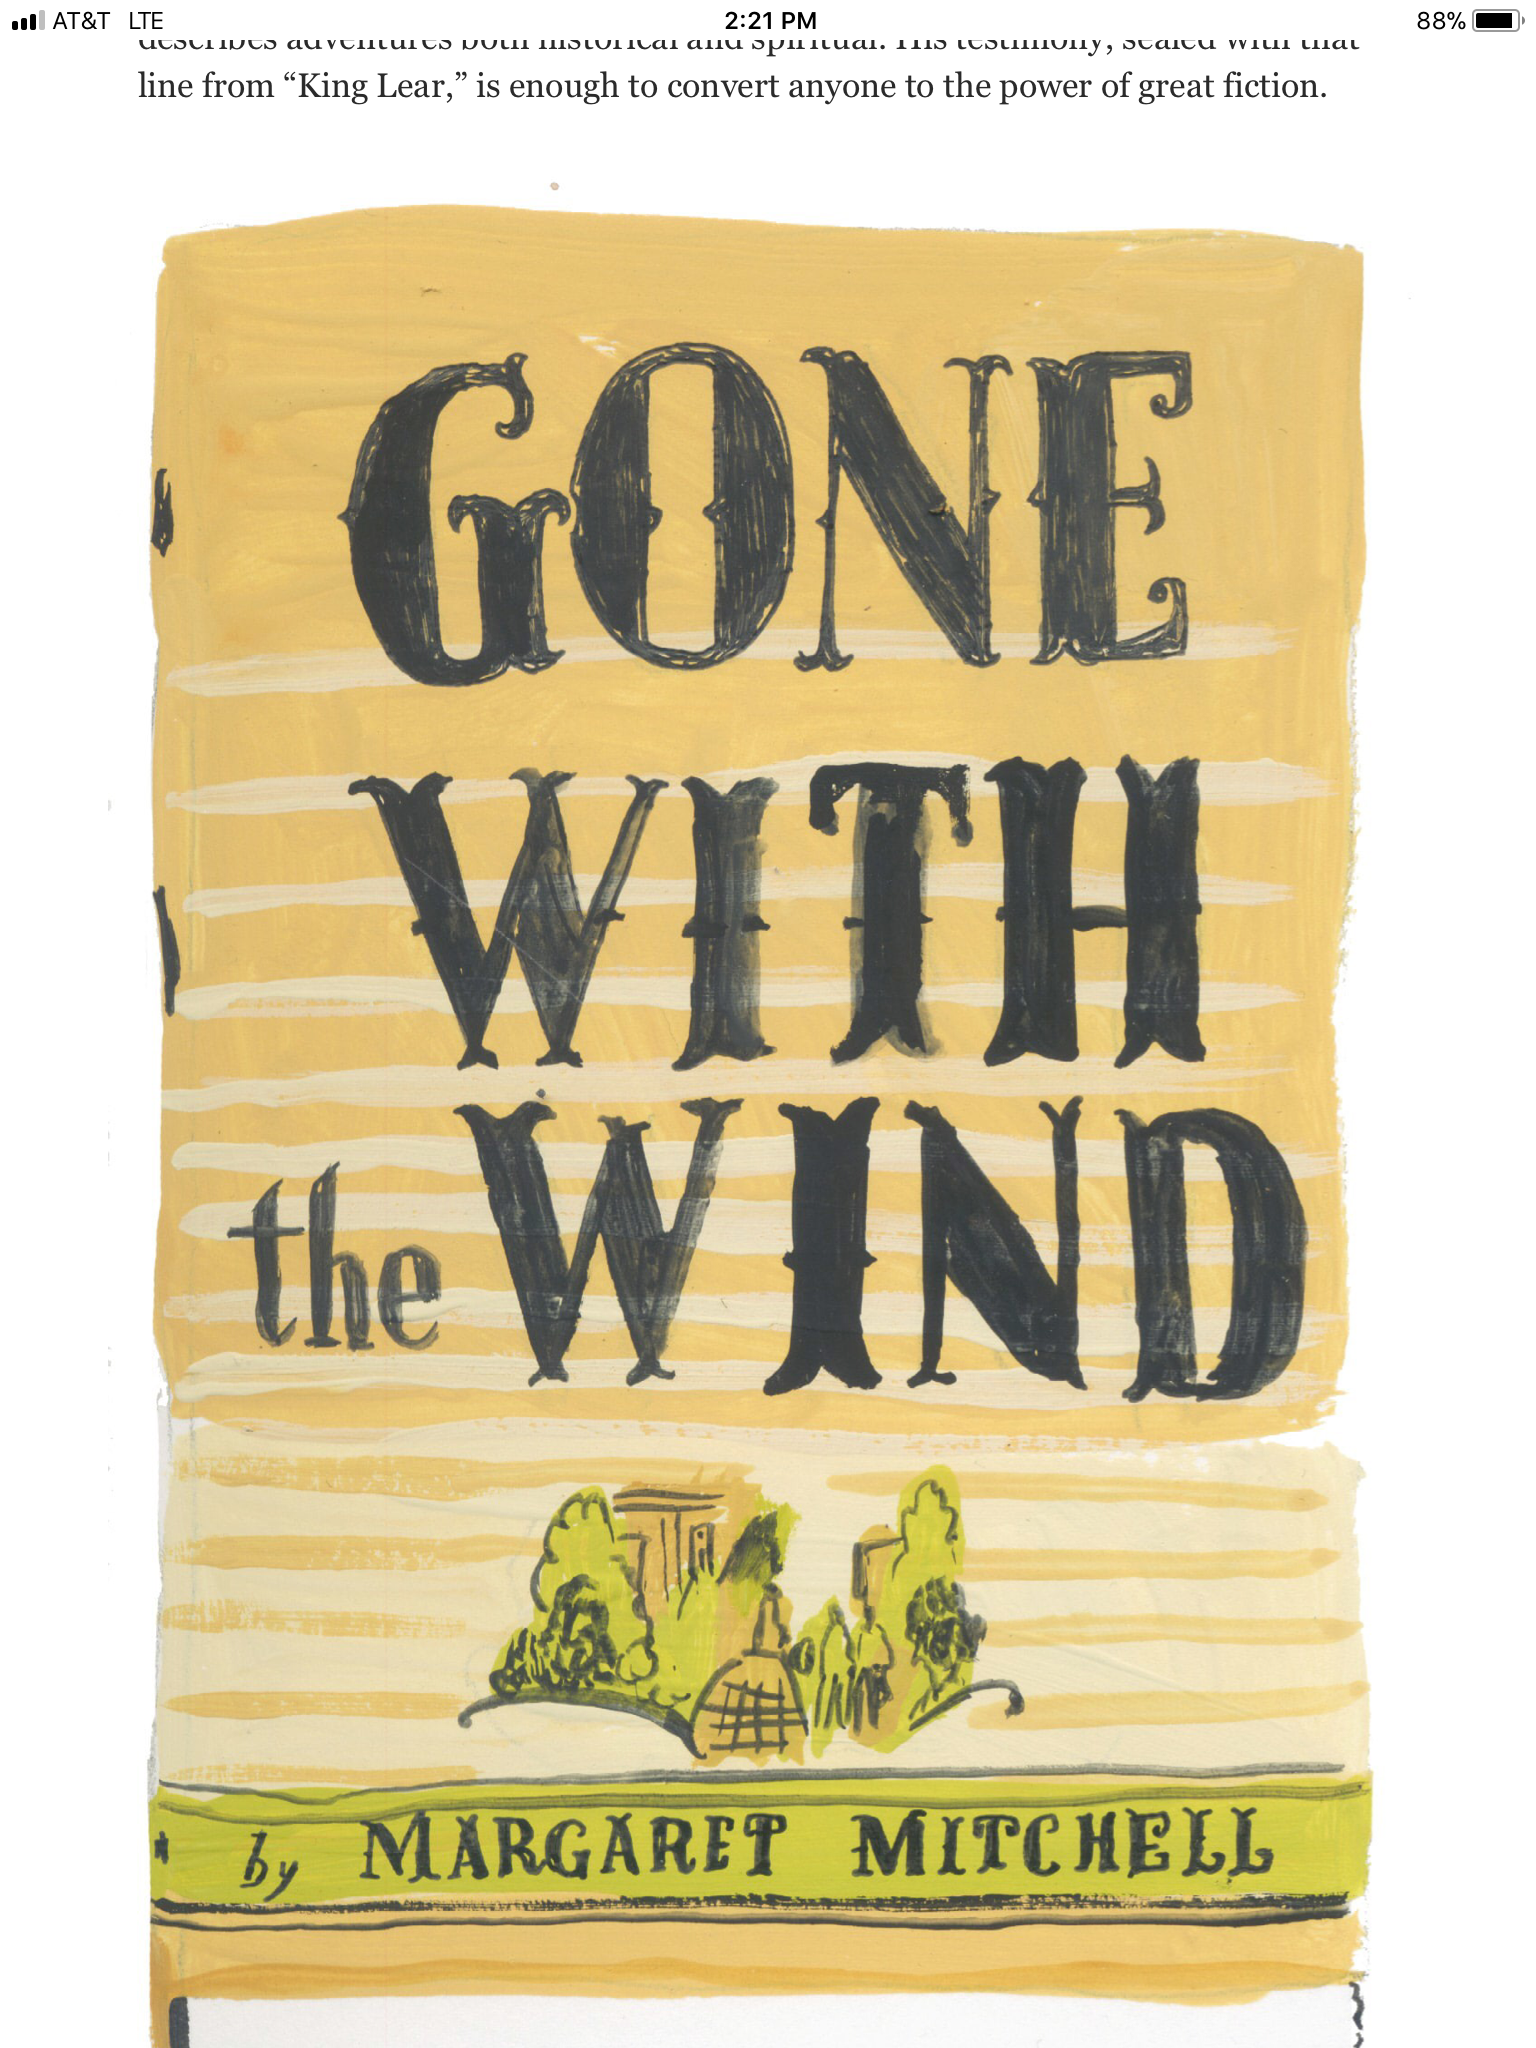 From The Washington Post 03 11 19 The 23 Most Unforgettable Final Lines In Fiction By Ron Charles Artist Julia R Fiction Graphic Design Gone With The Wind